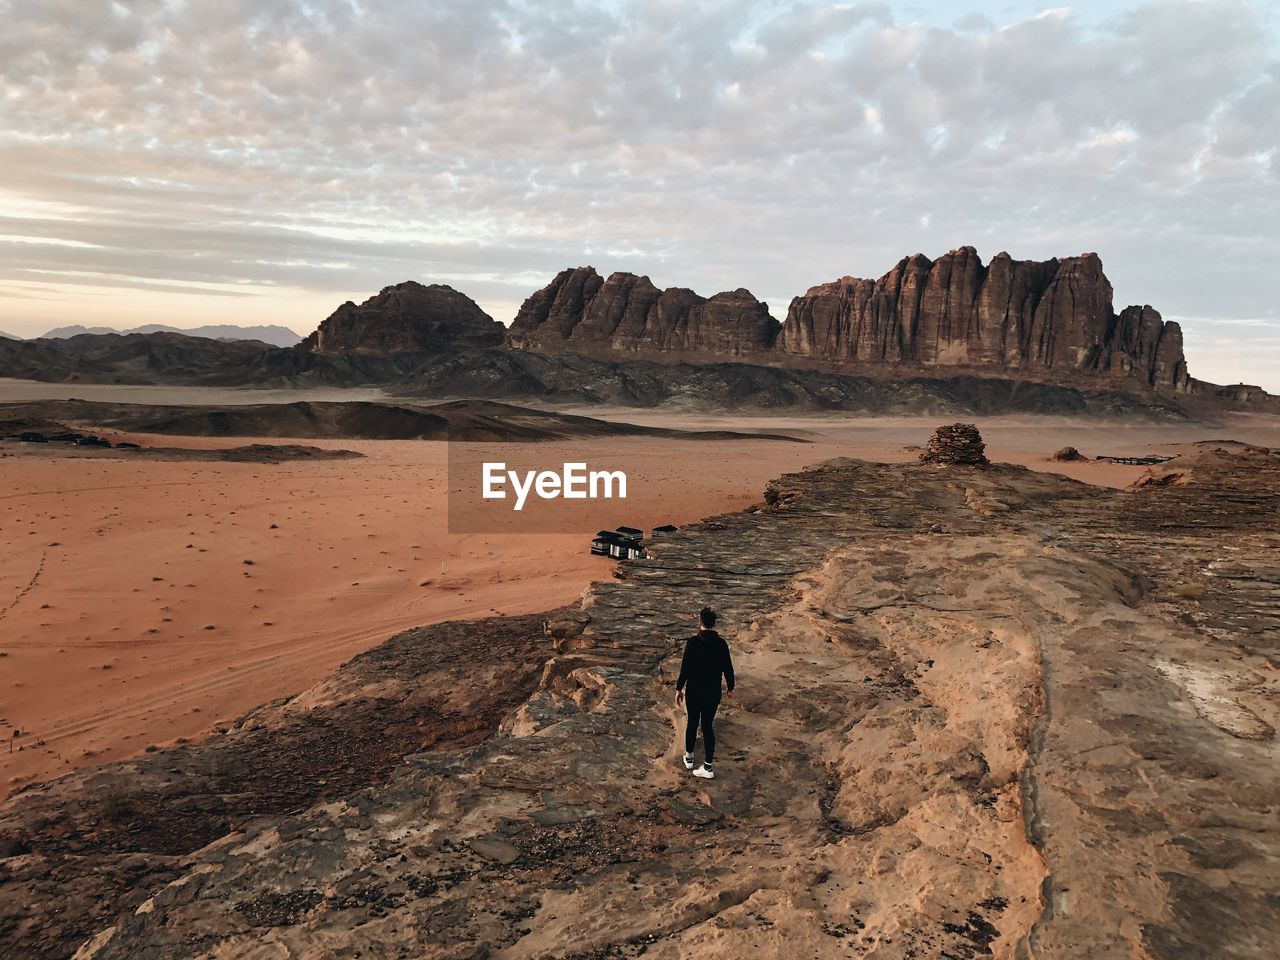 High angle view of man standing on rock formation looking at arid landscape